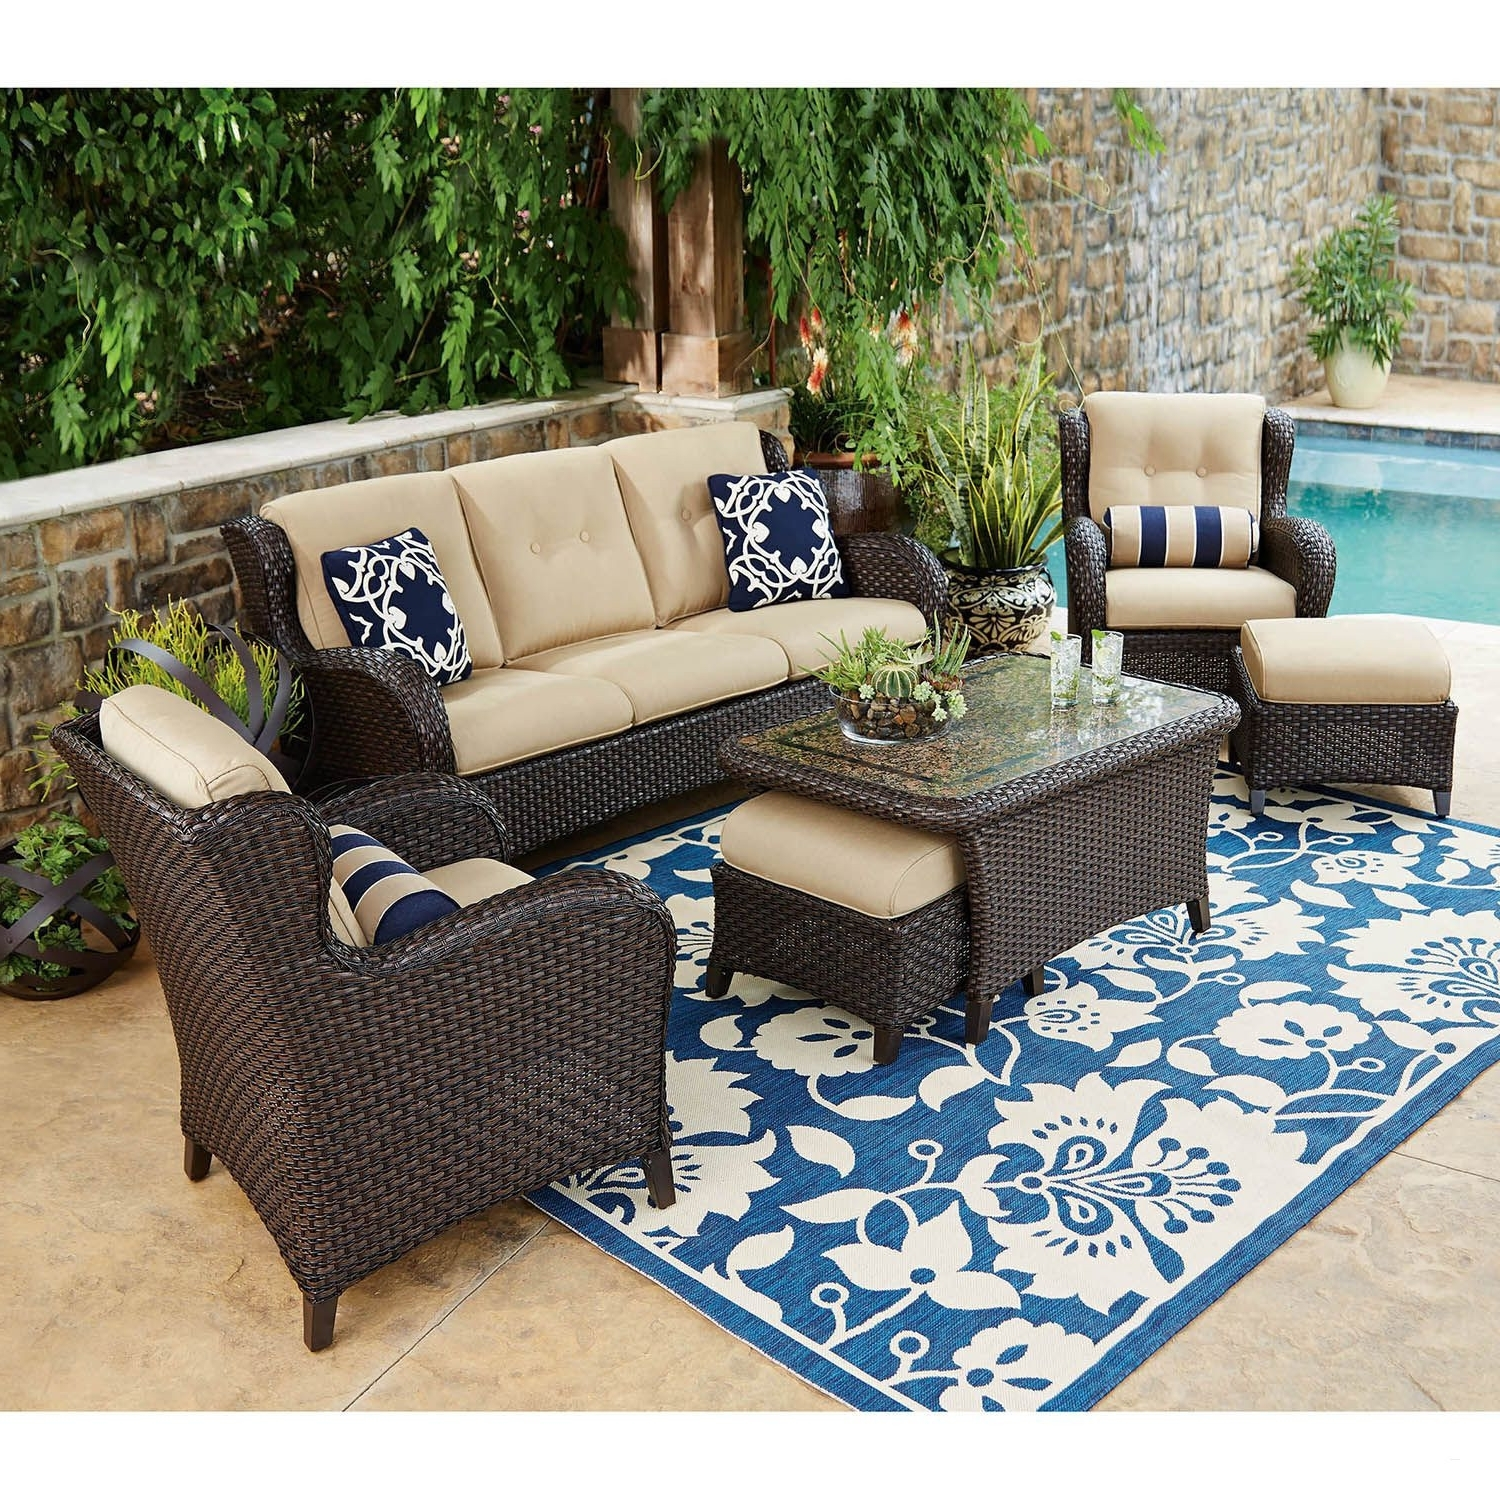 Widely Used Kohls Patio Umbrellas Luxury Sonoma Patio Furniture Best Chair 49 Inside Kohls Patio Umbrellas (View 7 of 20)